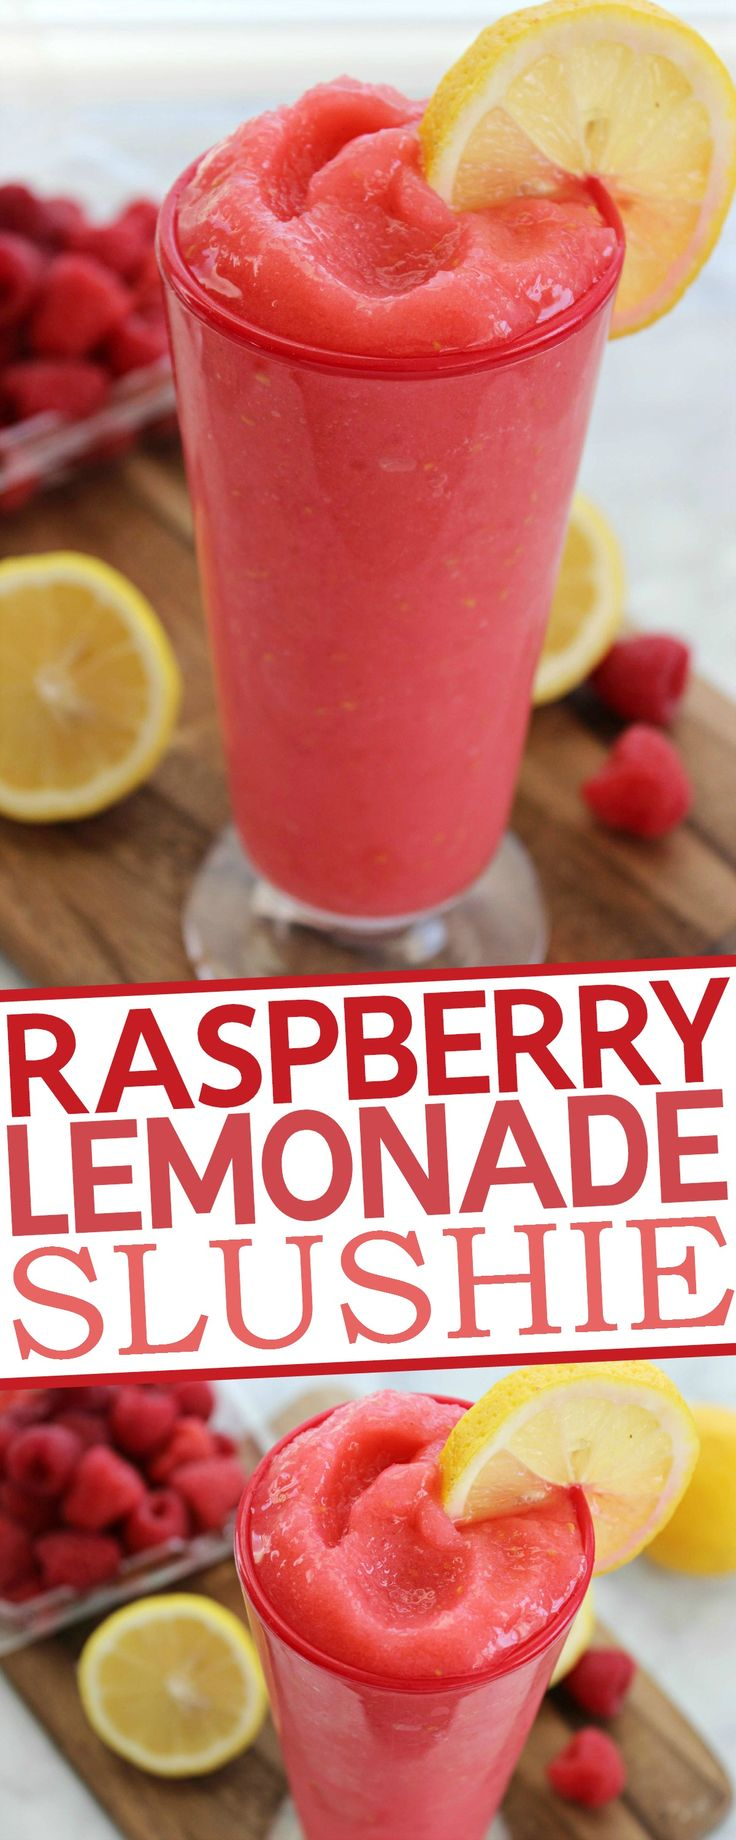 Raspberry Lemonade Slushie Recipe